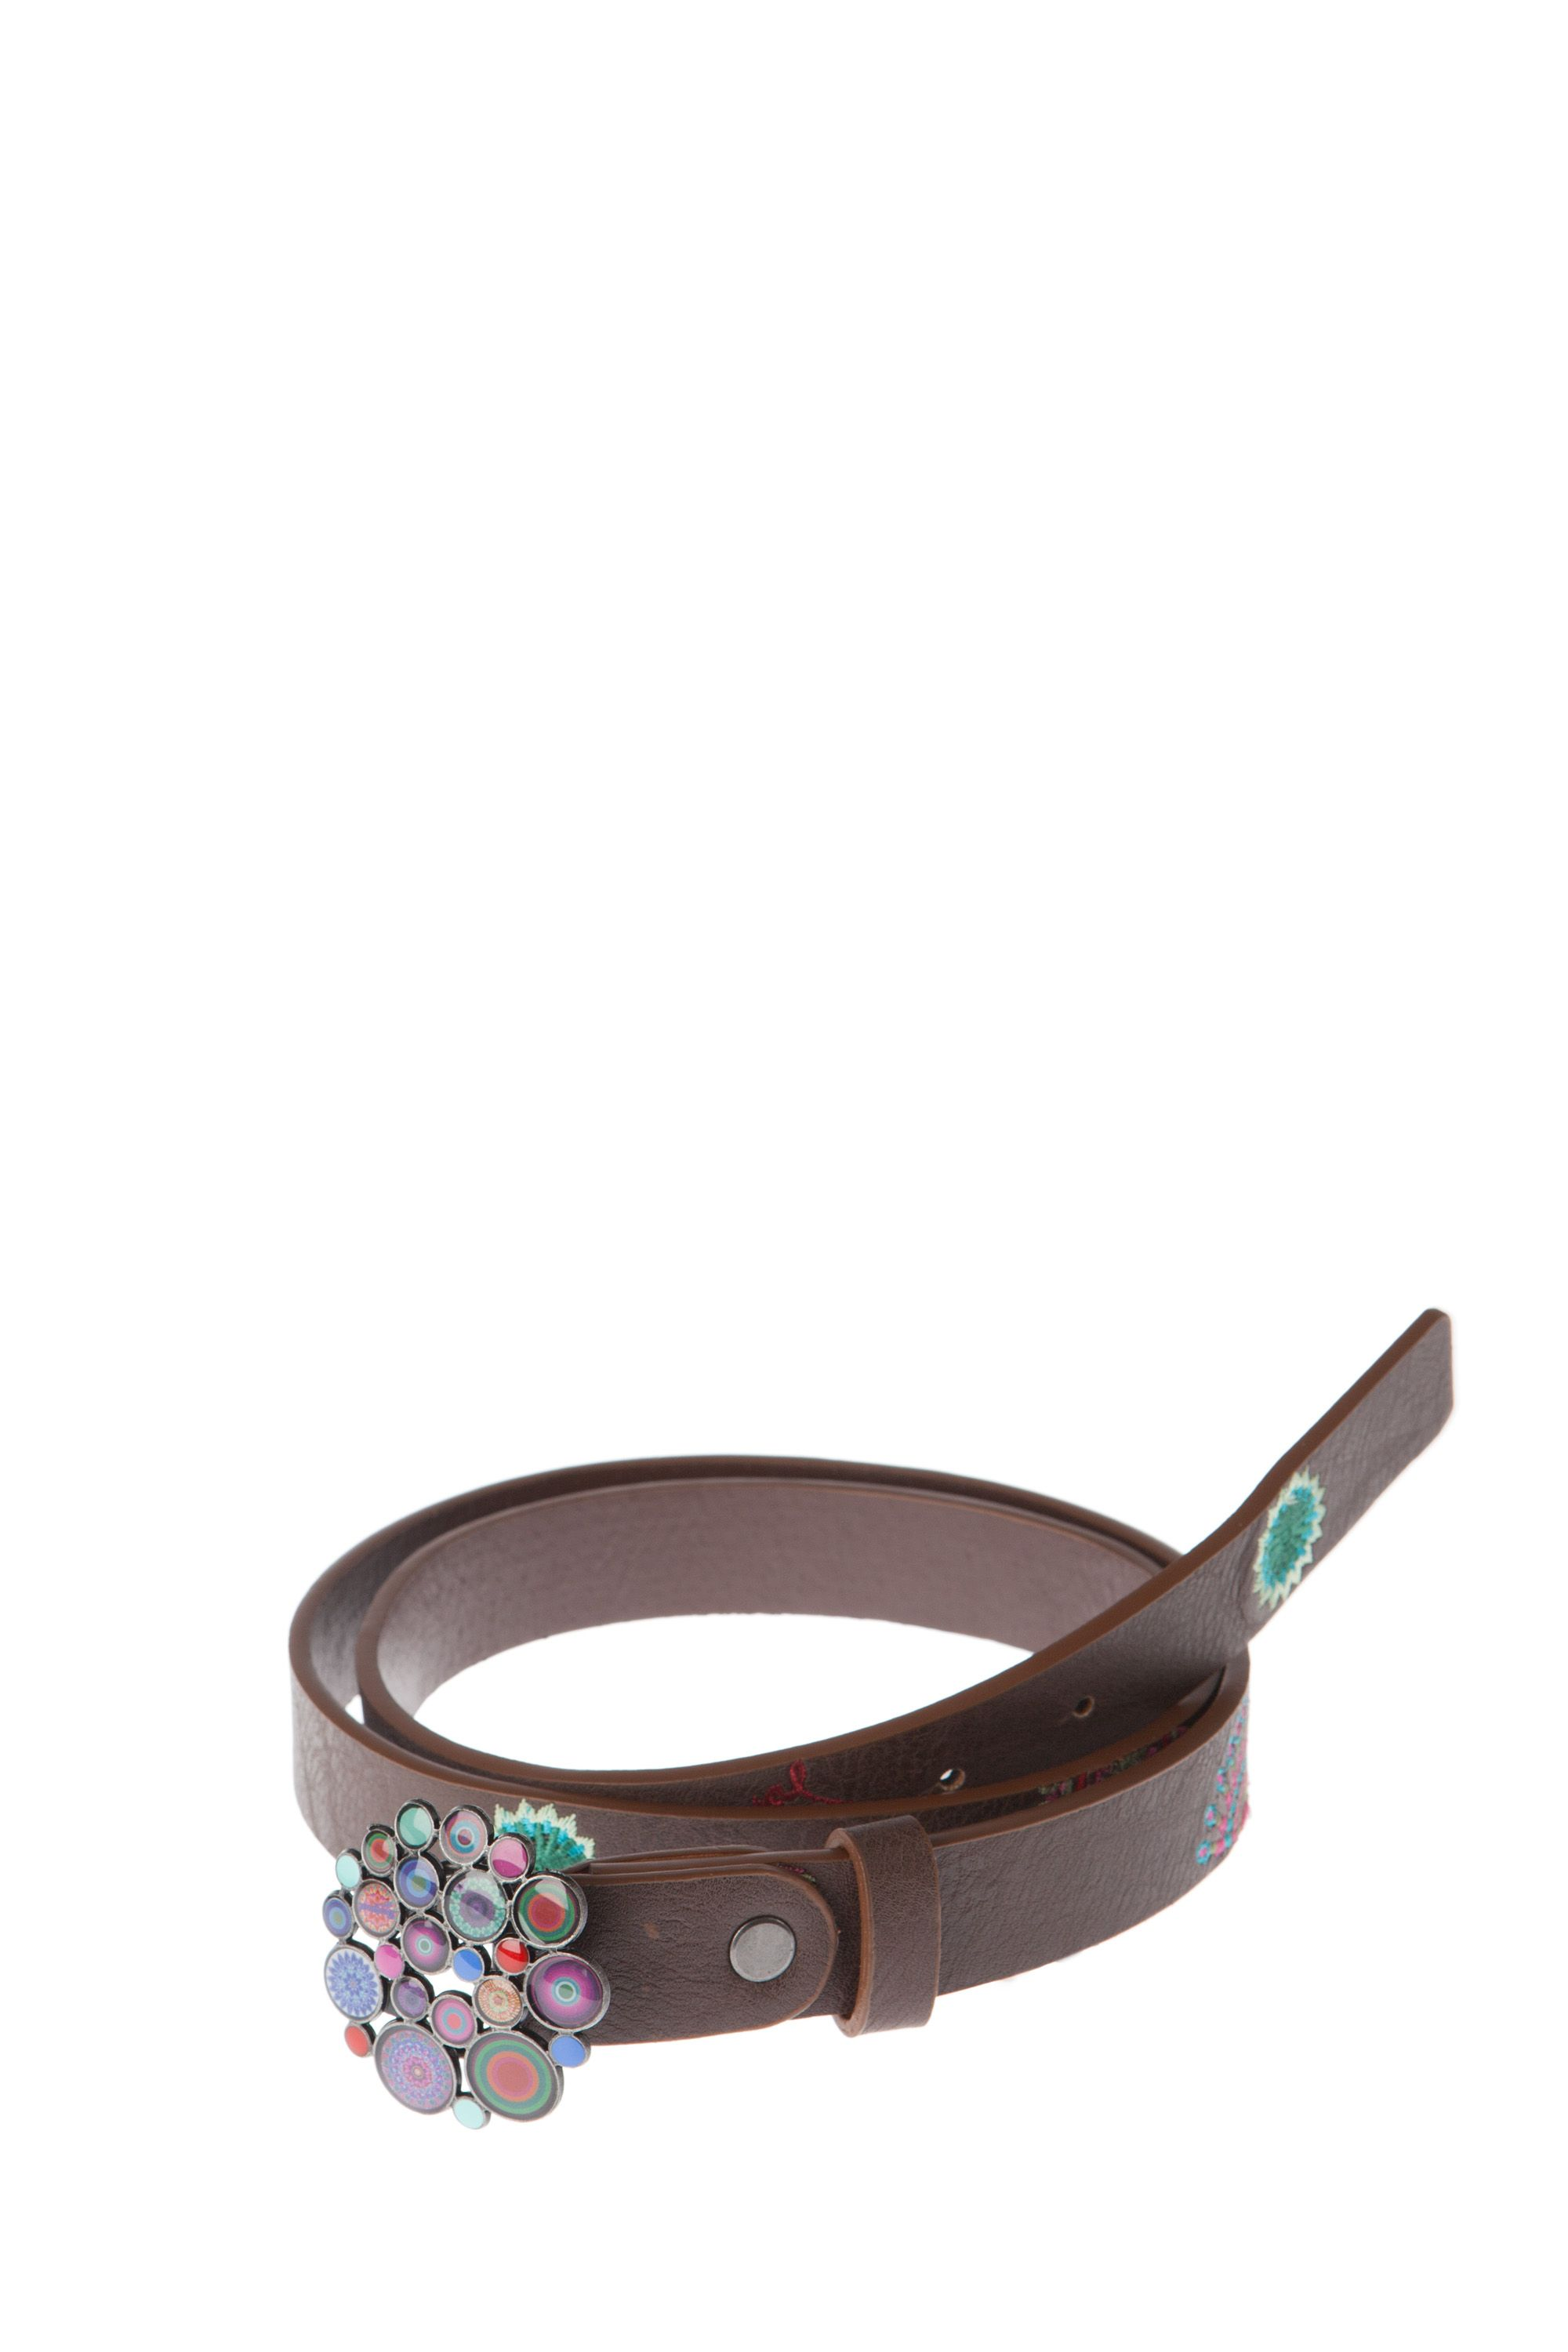 Jupiter fresh printed belt